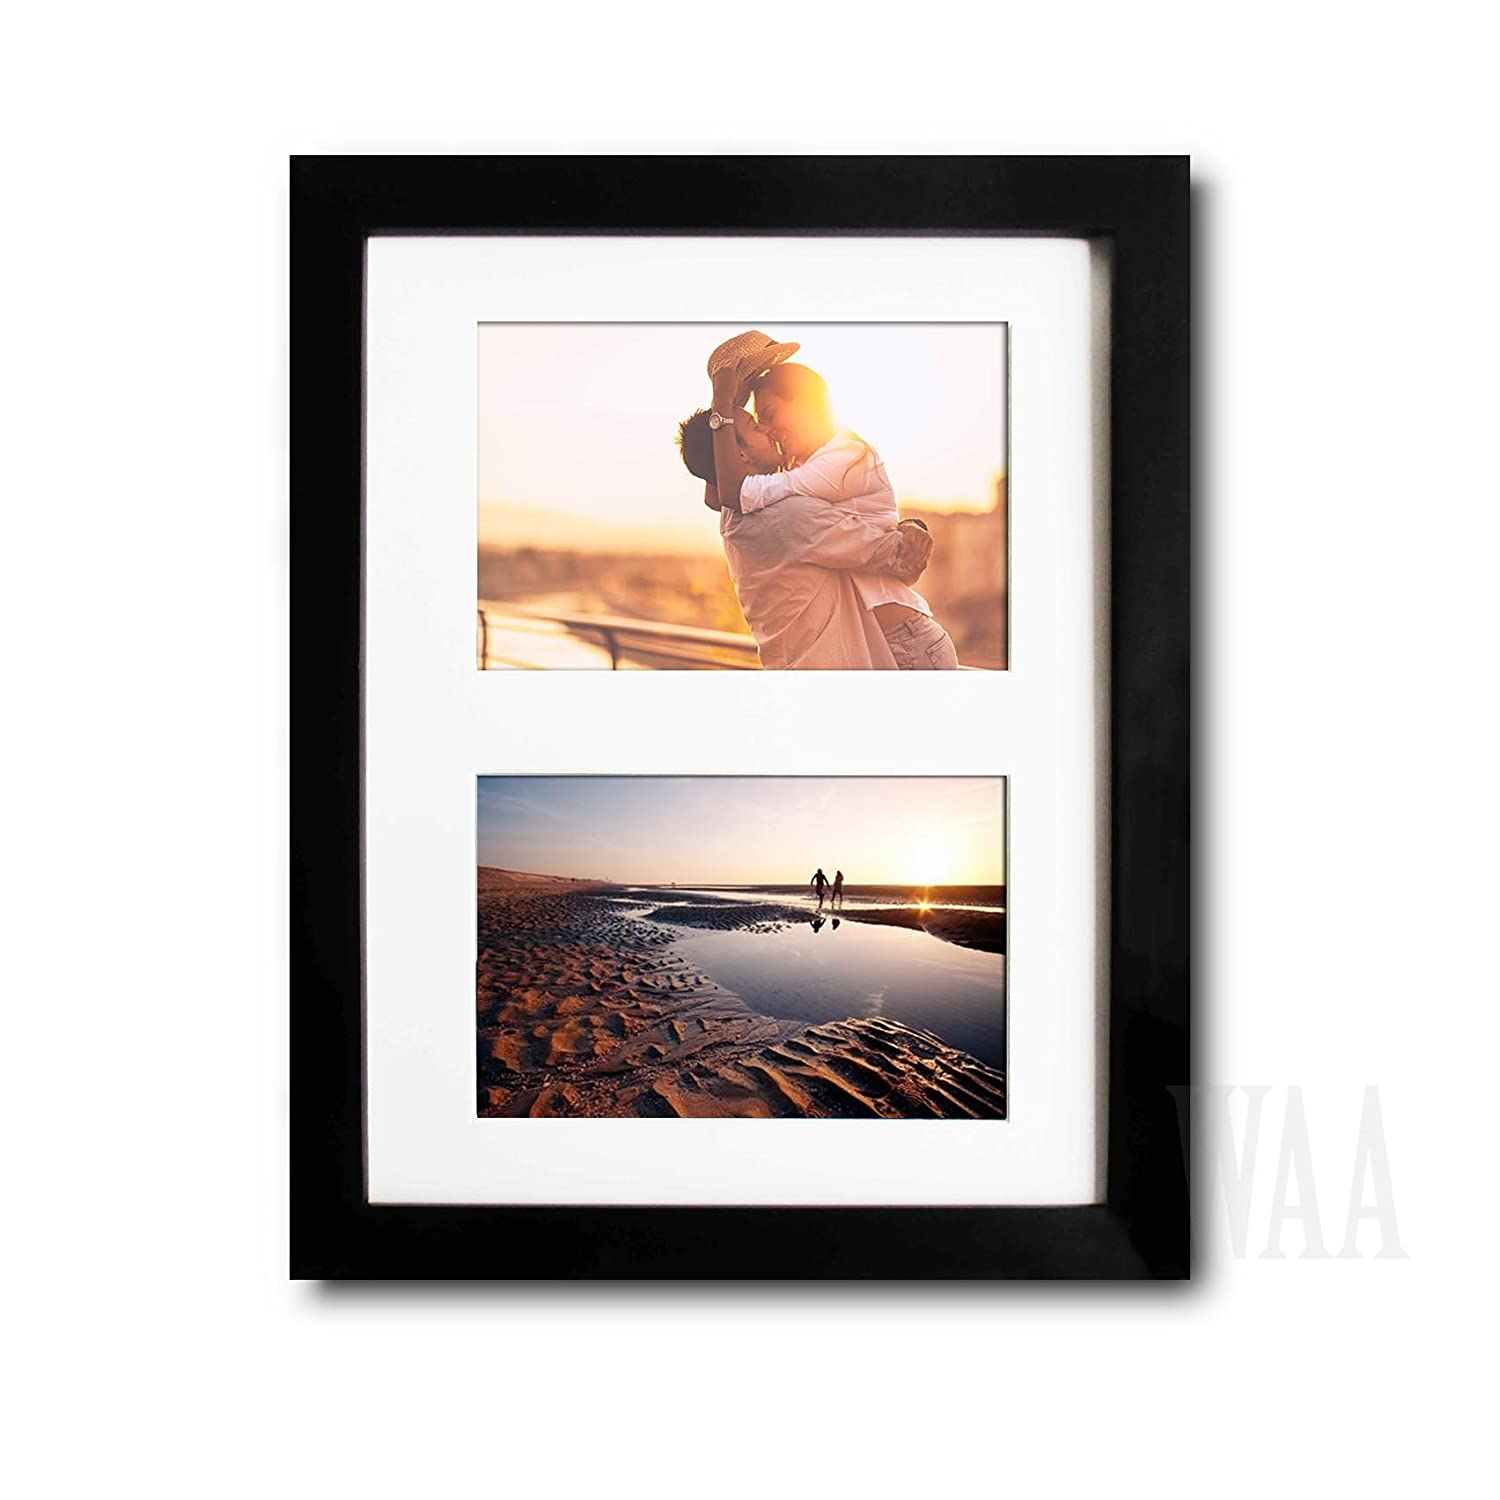 Amazon.com - World Ancient Art ~ 5x7 Picture Frame made of Black ...